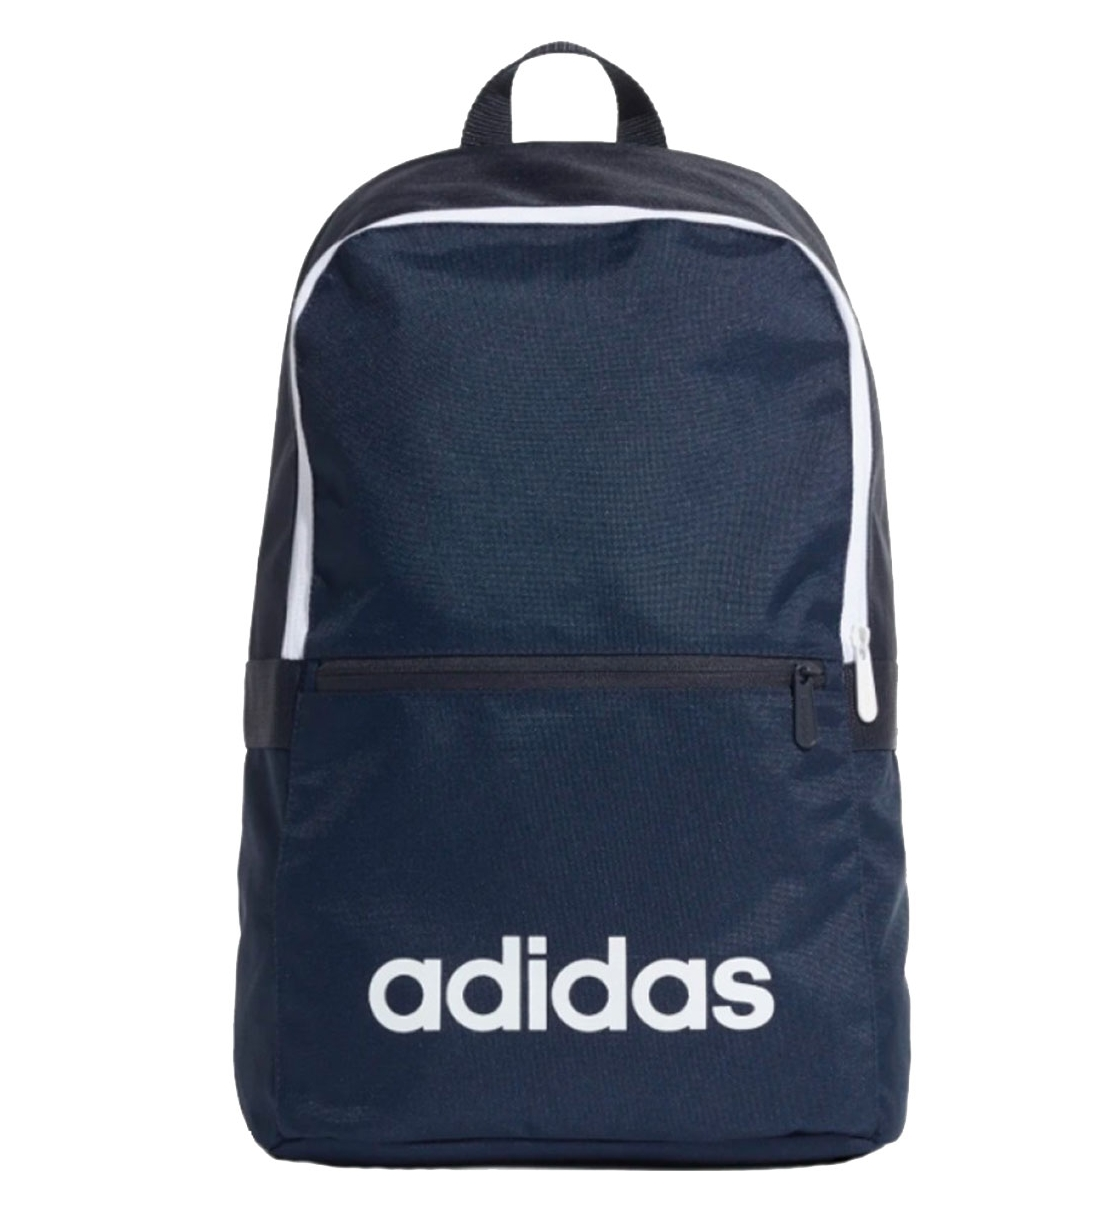 Adidas Fw19 Linear Classic Backpack Daily